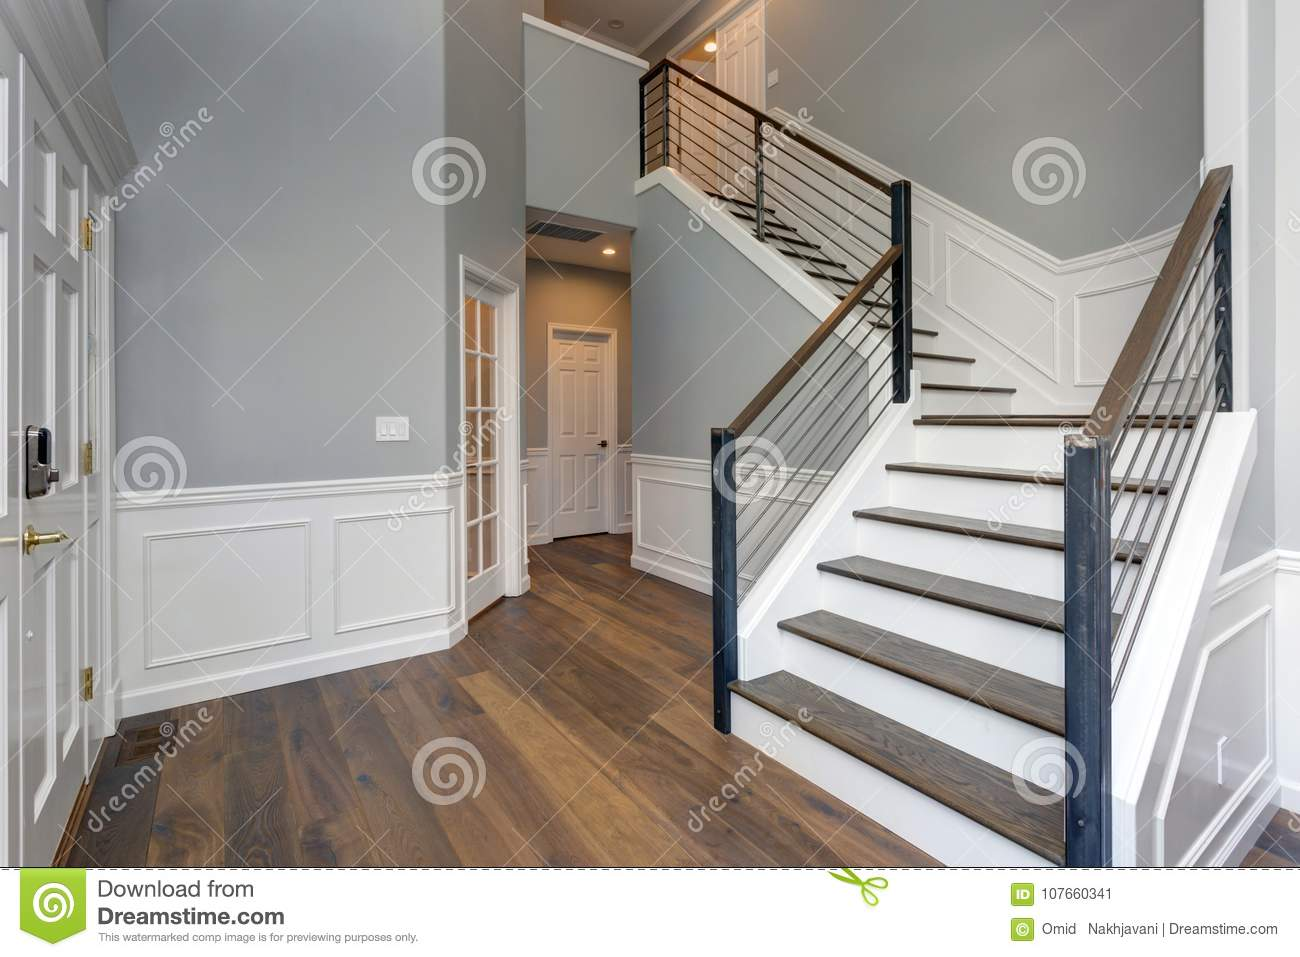 Stunning Two Story Entrance Foyer Design With White Wainscoting Grey Walls And A Staircase